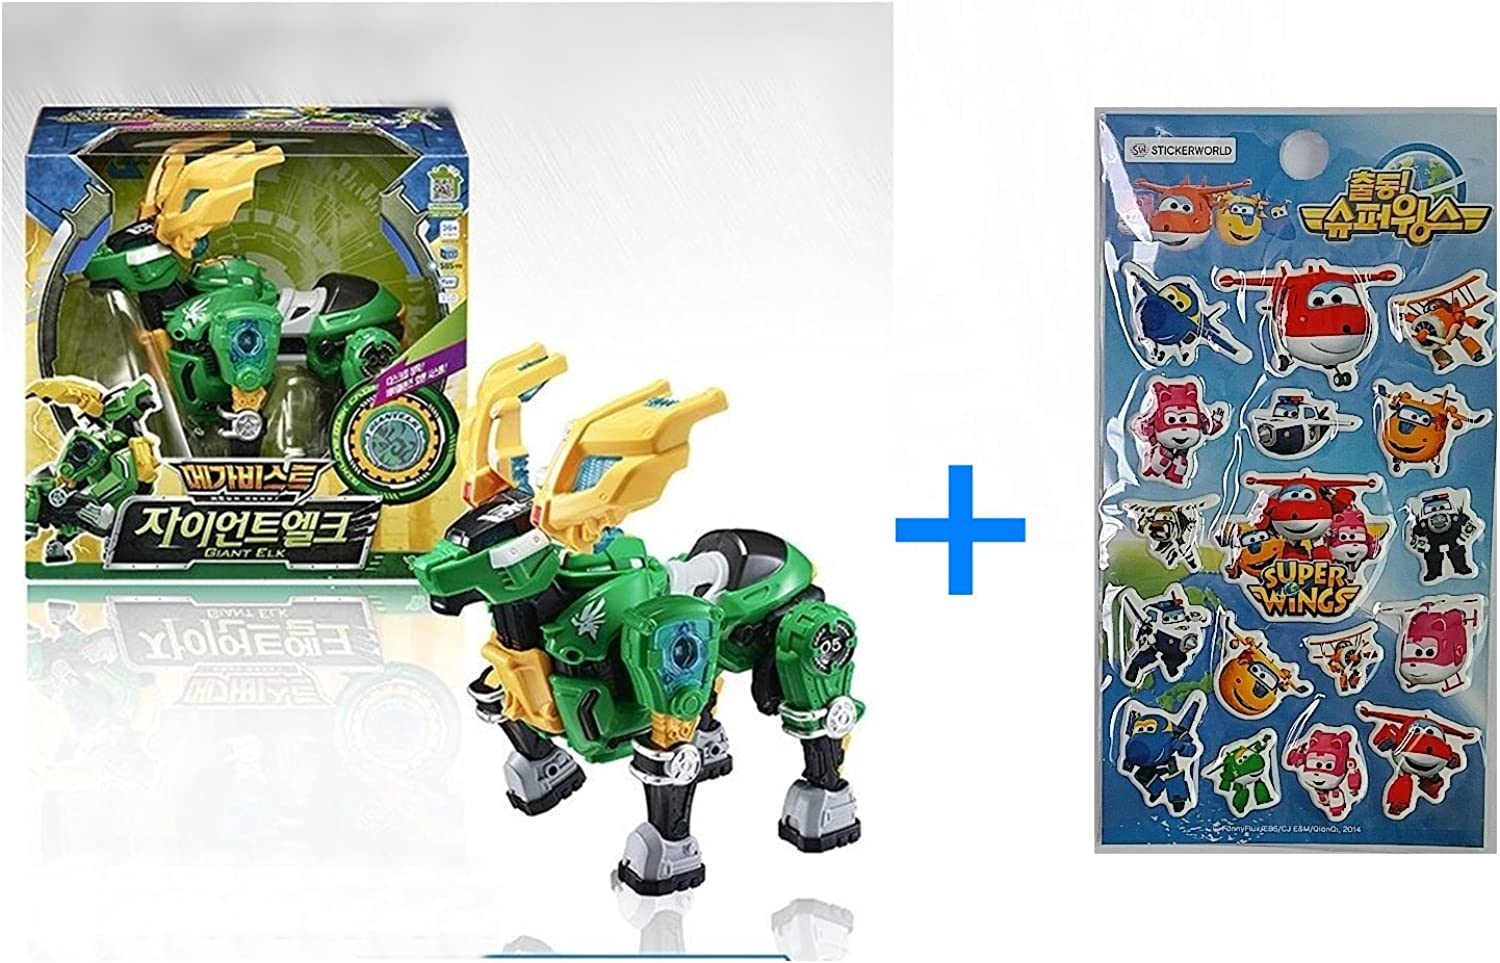 Young Toys Koreatv Animation Biklonz Mega Beast Giant Elk Transforming Coalescence Robot, Action Figure Transformer Robot + Super Wings Sticker(2 Piece)